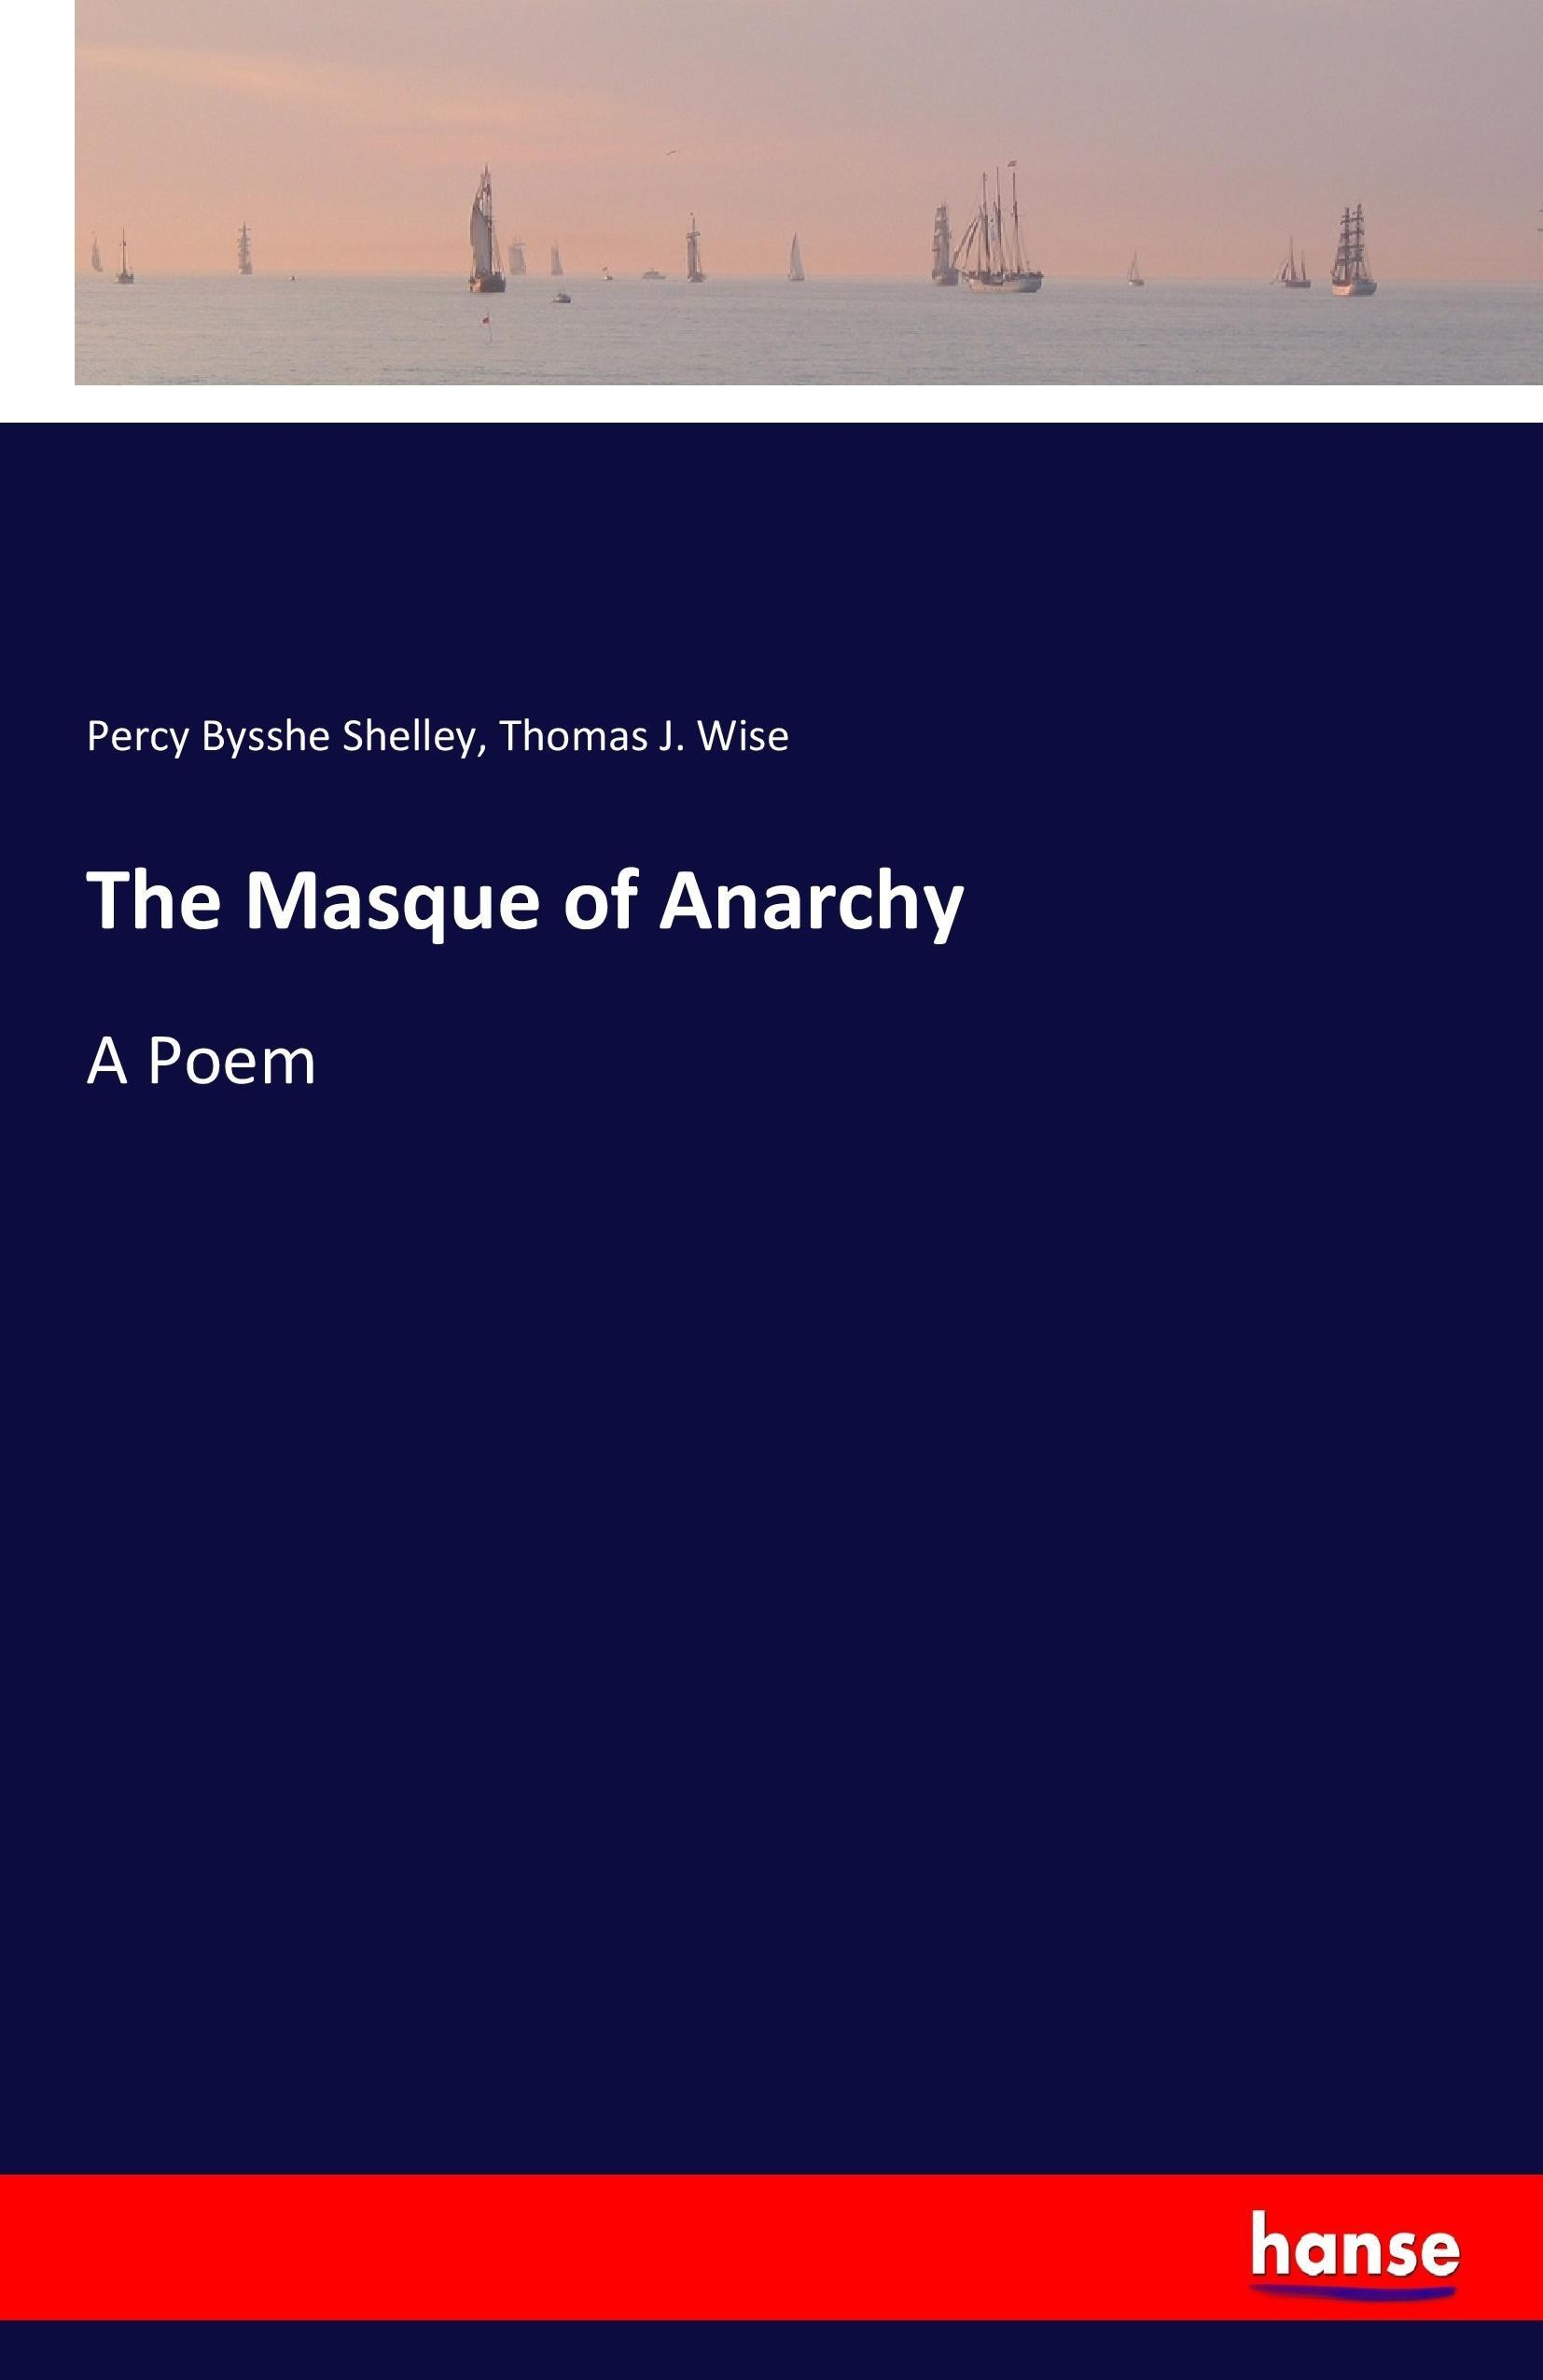 Percy-Bysshe-Shelley-The-Masque-of-Anarchy-9783337158040